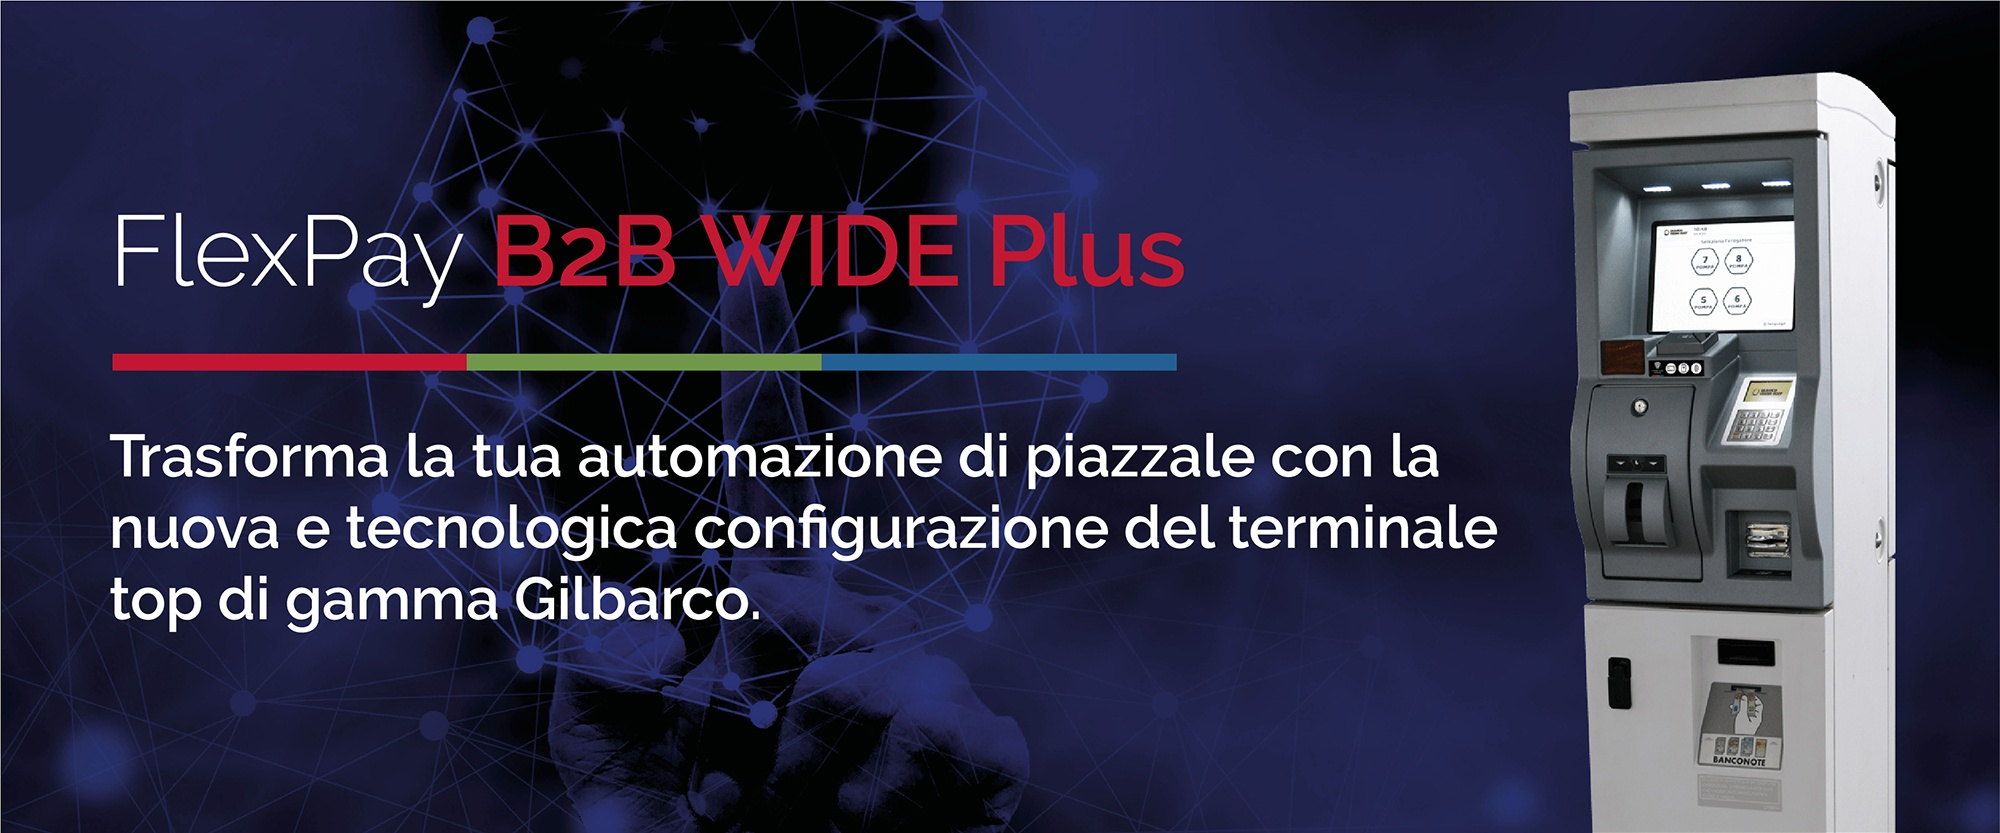 Flexpay B2b Widew Plus terminal